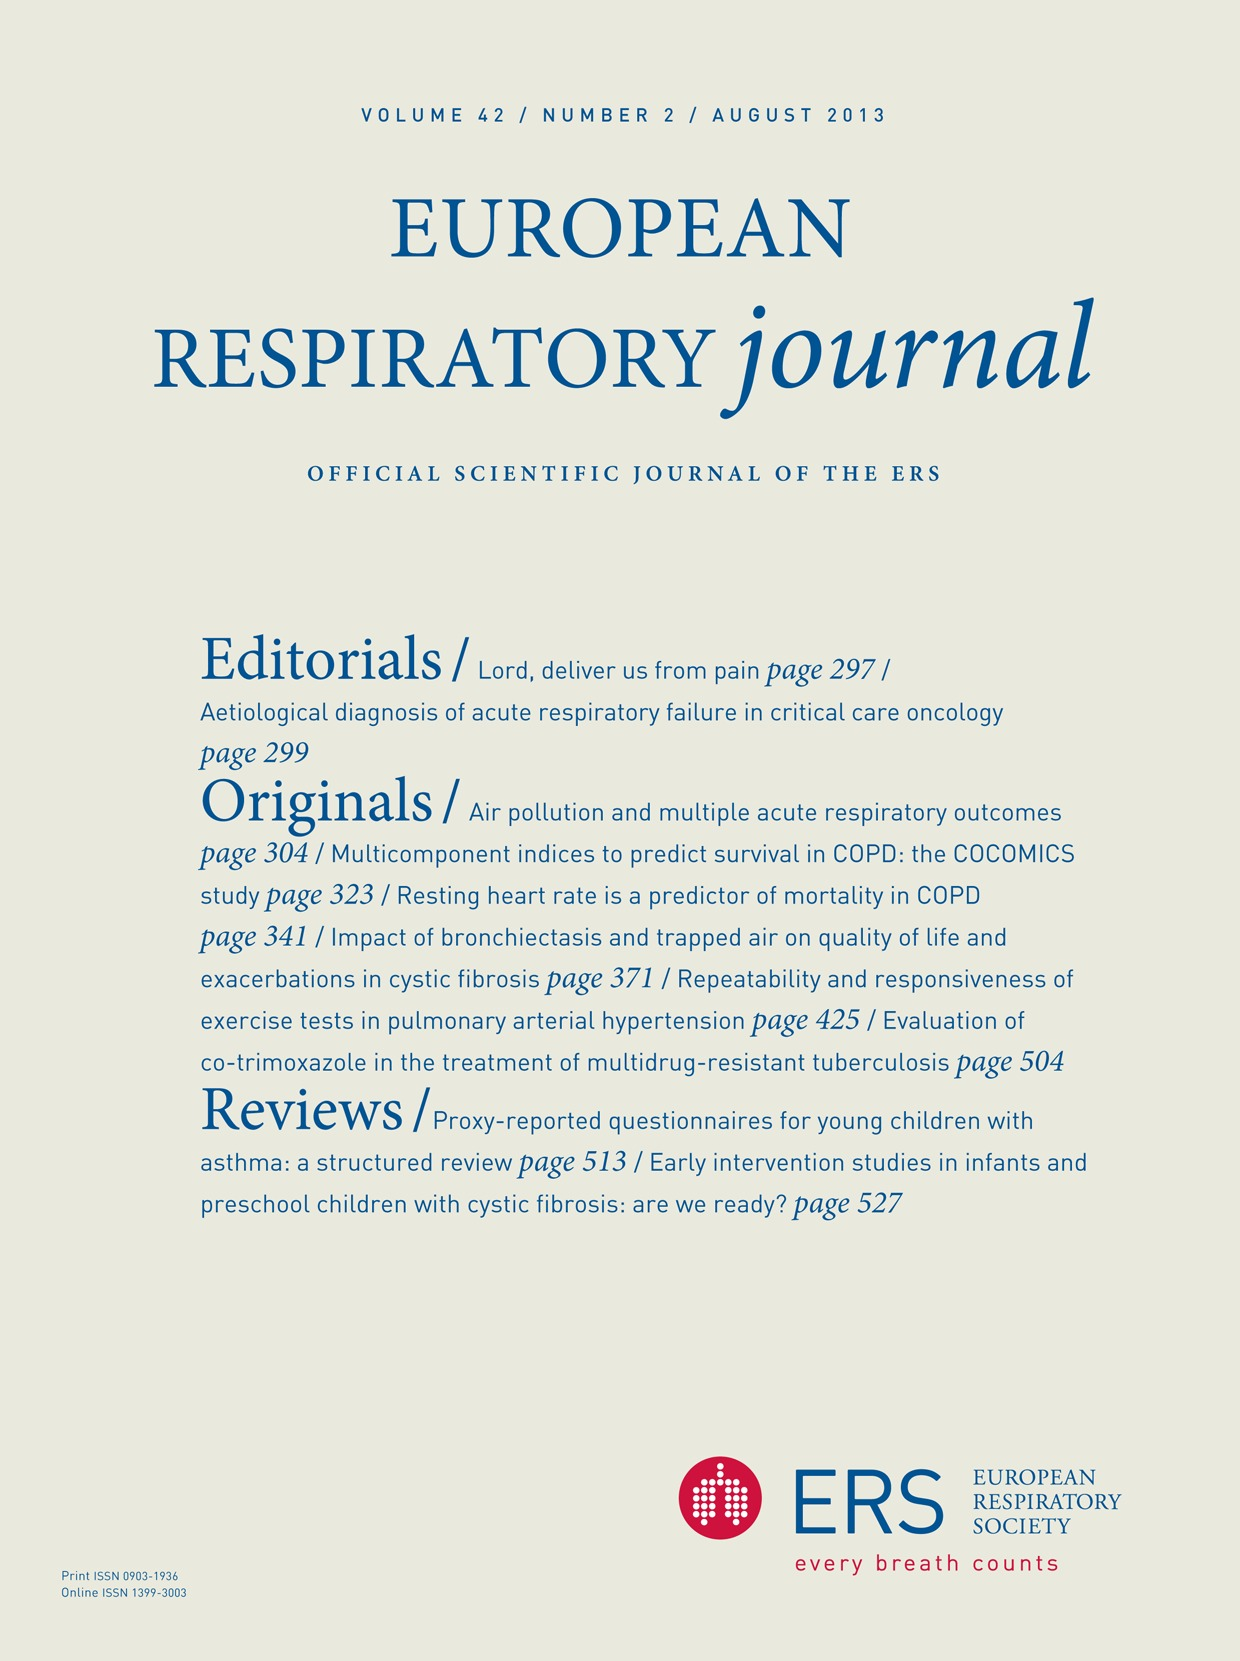 Scoring systems using chest radiographic features for the diagnosis of  pulmonary tuberculosis in adults: a systematic review | European  Respiratory Society